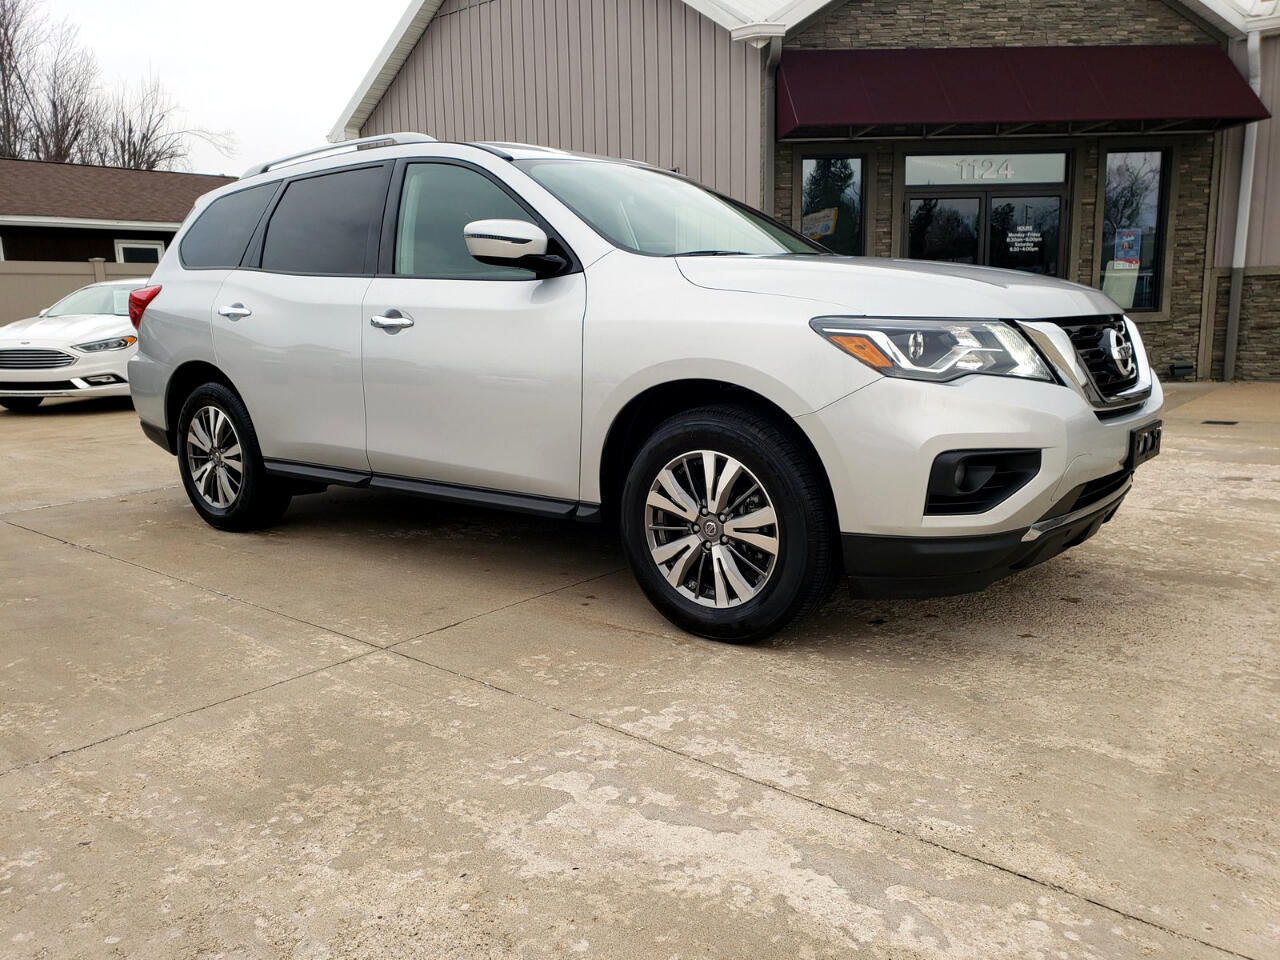 2019 Nissan Pathfinder SV Leather 4WD